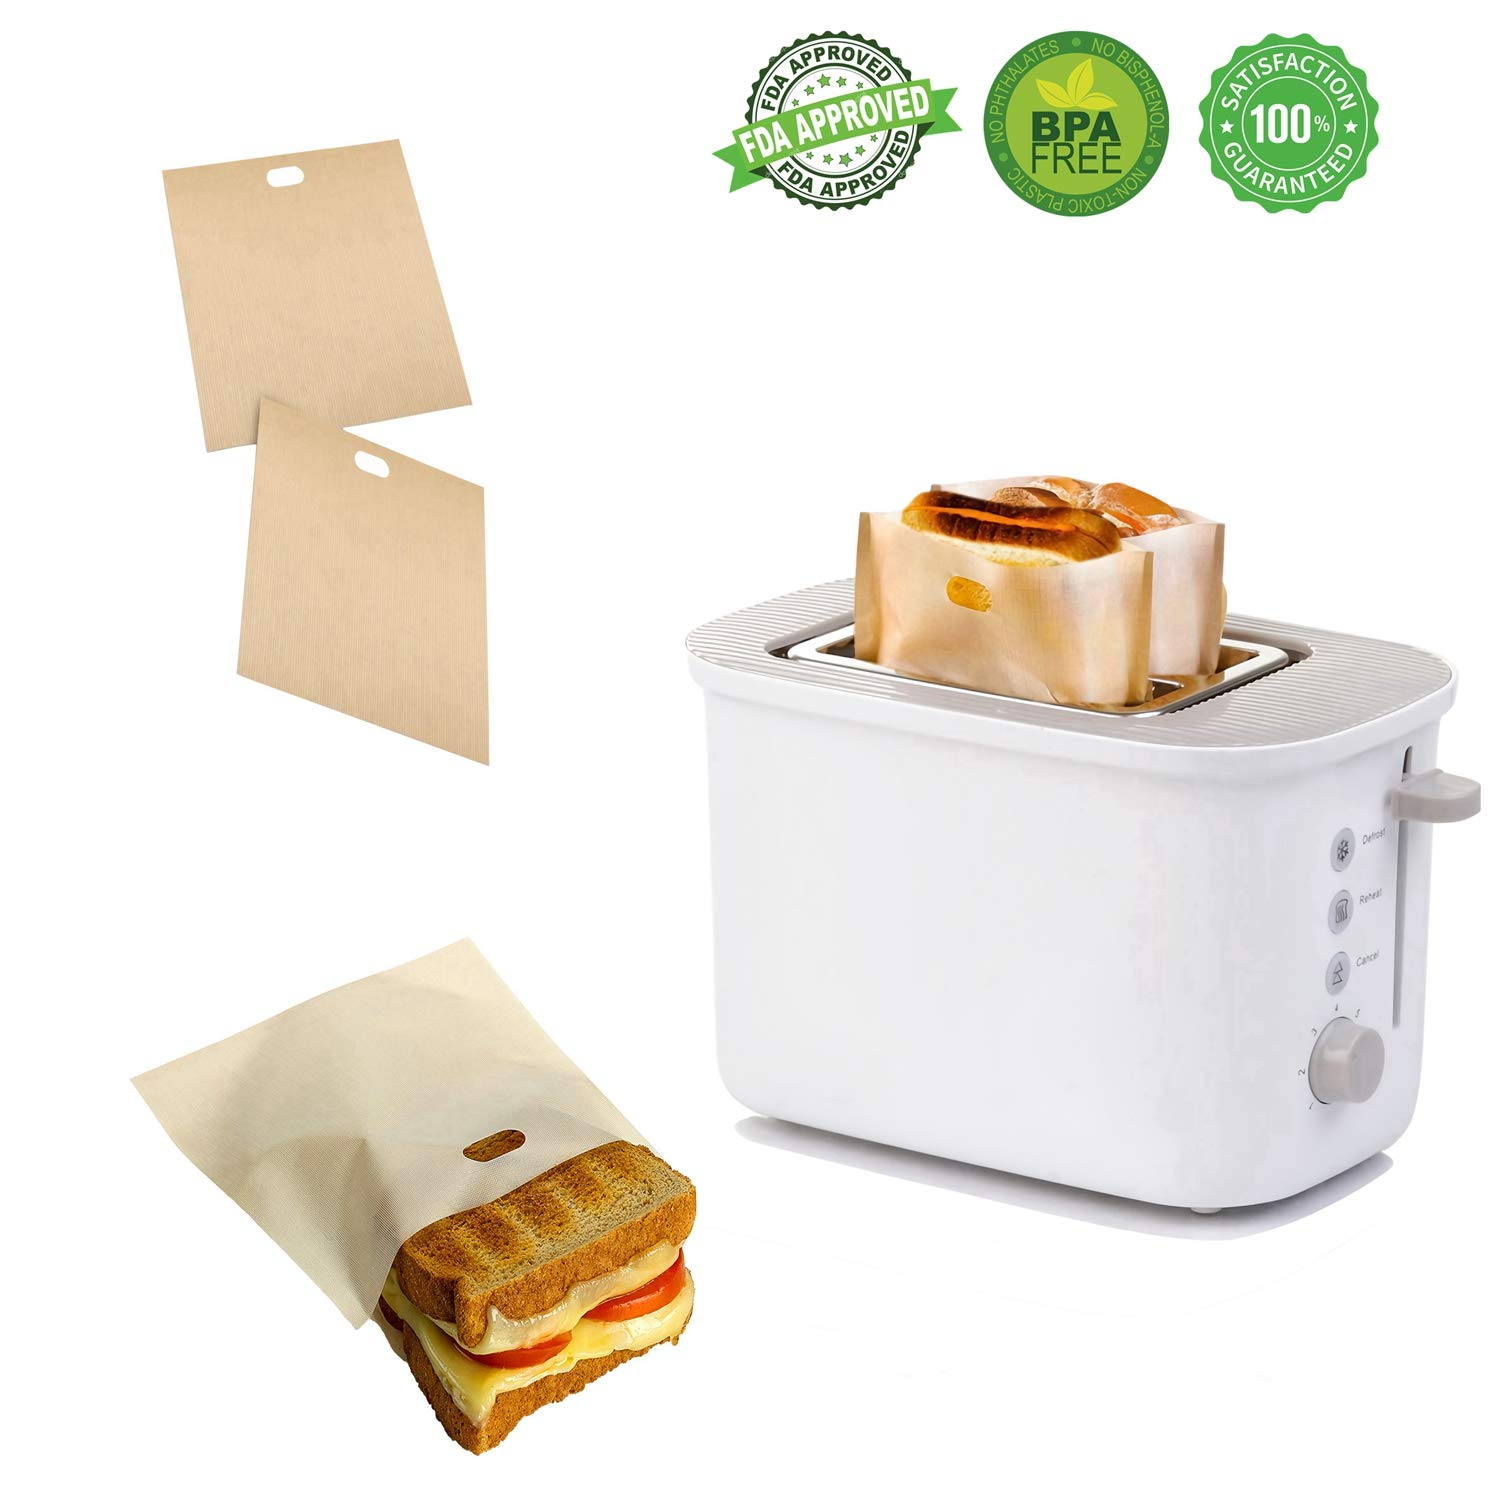 Non Stick Toaster Grilled Cheese Bags Reusable and Heat Resistant Easy to Clean, Gluten Free, FDA Approved, Perfect for Sandwiches, Chicken, Nuggets, Panini and Garlic Toasts - 10 Pcs